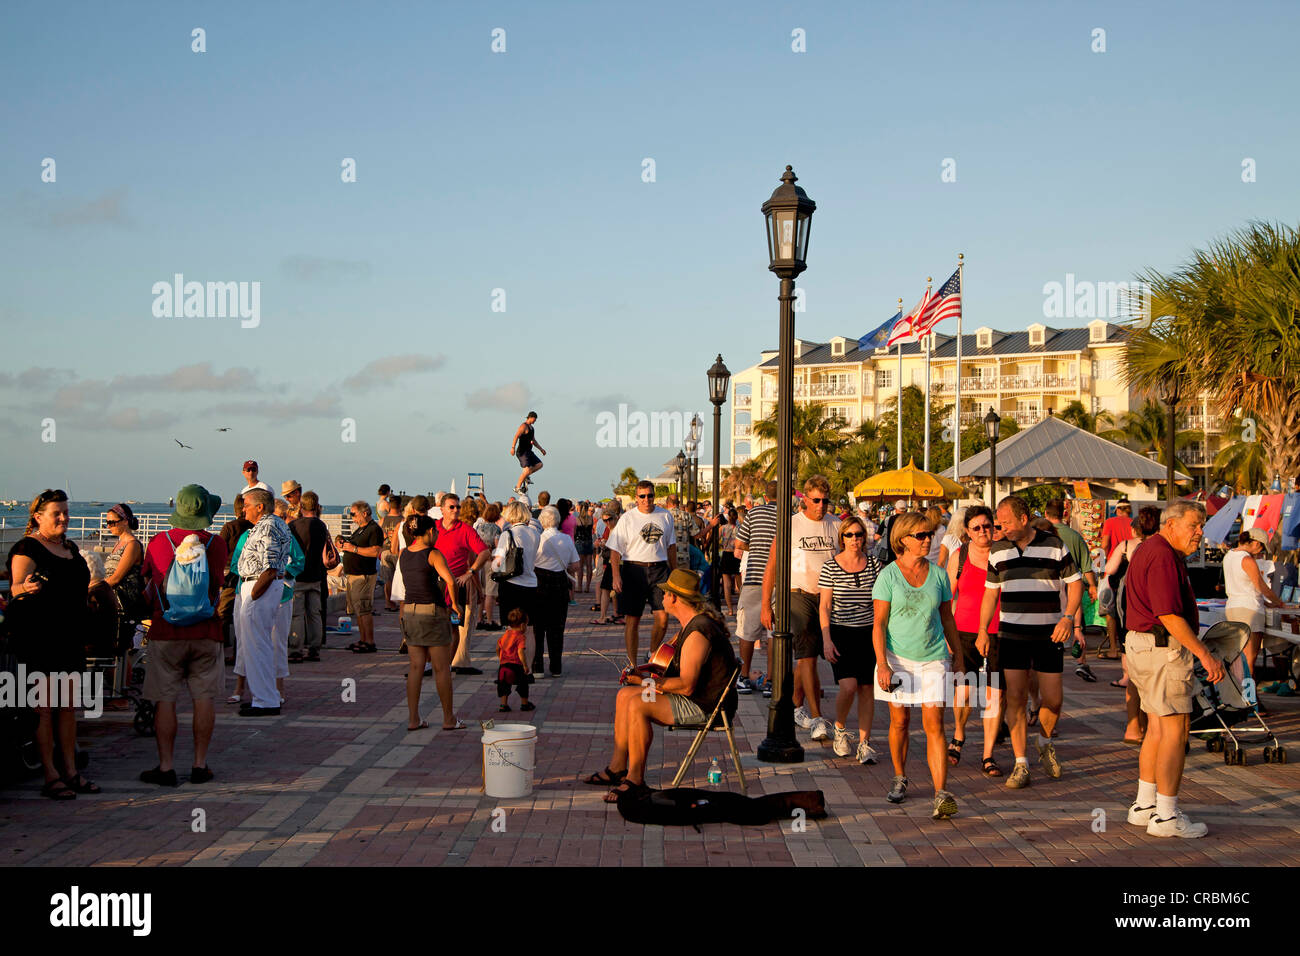 Street performer and pedestrians on Mallory Square in Key West, Florida Keys, Florida, USA - Stock Image